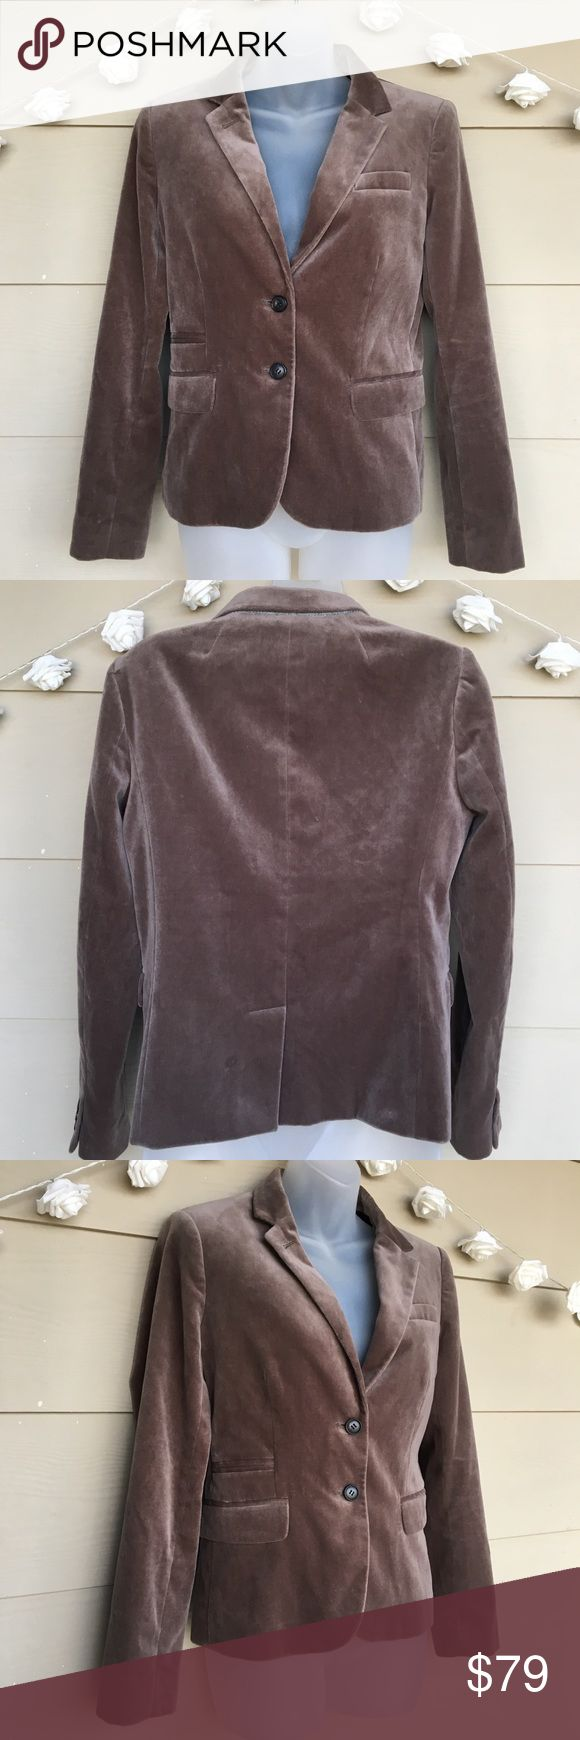 J. Crew • Schoolboy Taupe Velvet Blazer Jacket J. Crew • Schoolboy Taupe Velvet Blazer     —Size = 6 —In Excellent Pre-Owned Condition —This blazer is amazing! Great neutral cut and designed to fit the body just right. Very comfy. Velvet like finish. Black faint polka dot inside lining. Great business / career blazer.   ?? Questions ?? — Please ask! :)  •Offers & counteroffers always welcome.  •All packages shipped fast with love & care. •Happy Poshing!! J. Crew Jackets & Coats Blazers